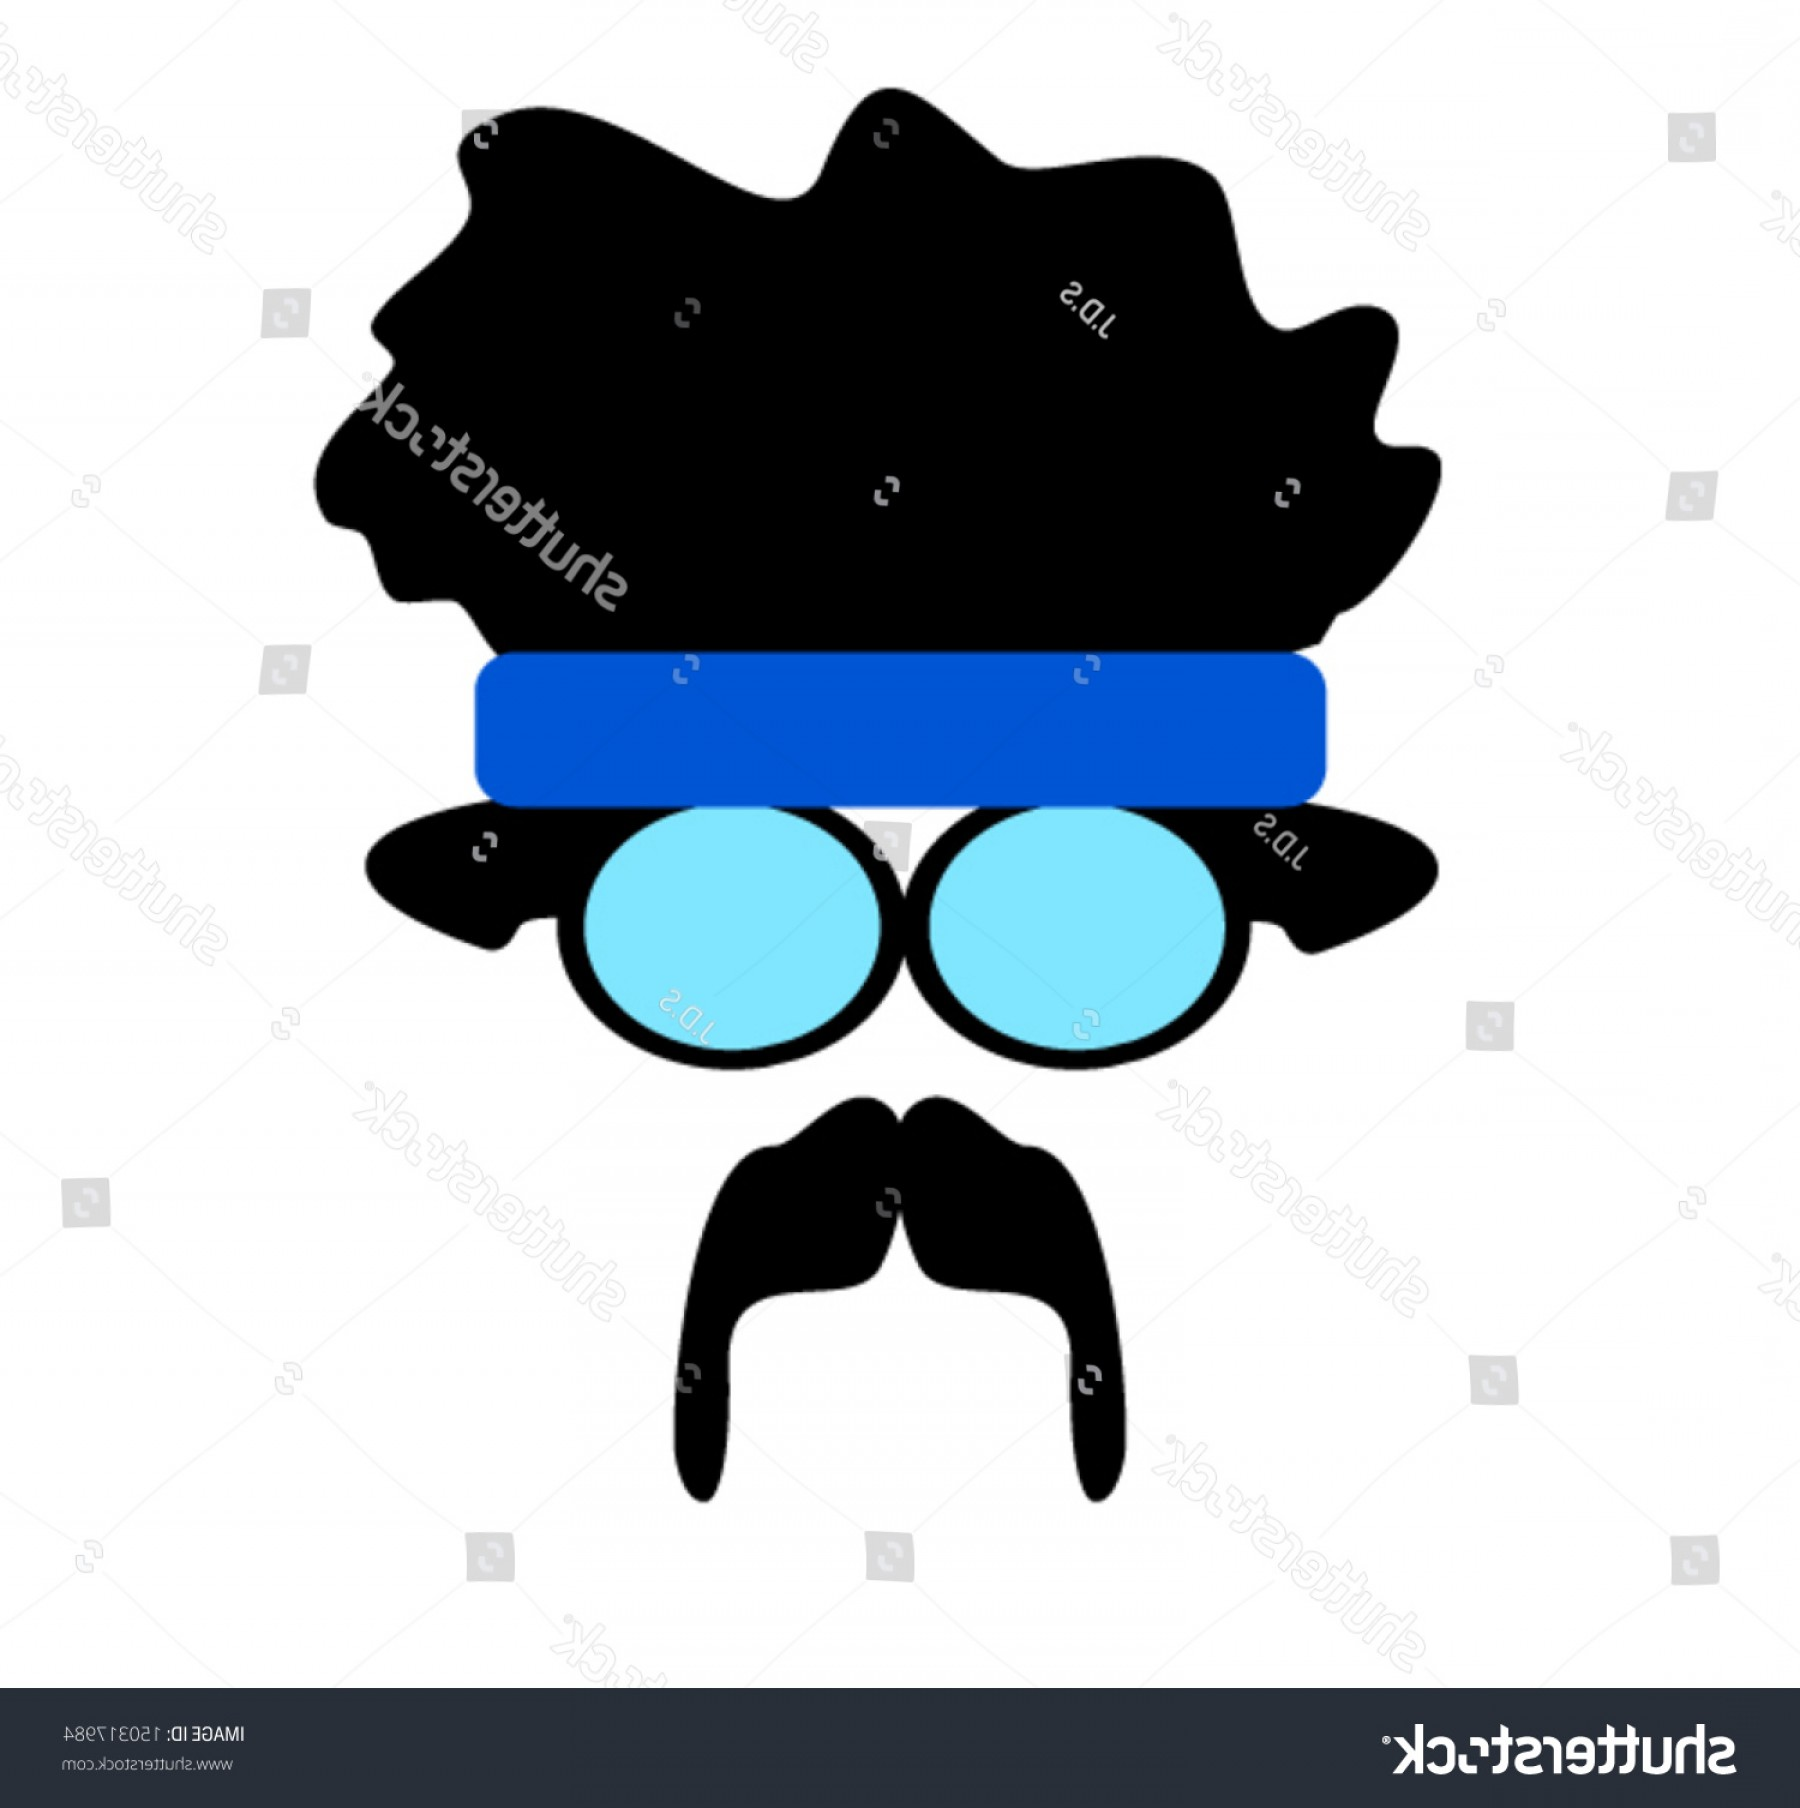 Reading Glasses For Men Vector: Man Afro Headband Wearing Large Reading